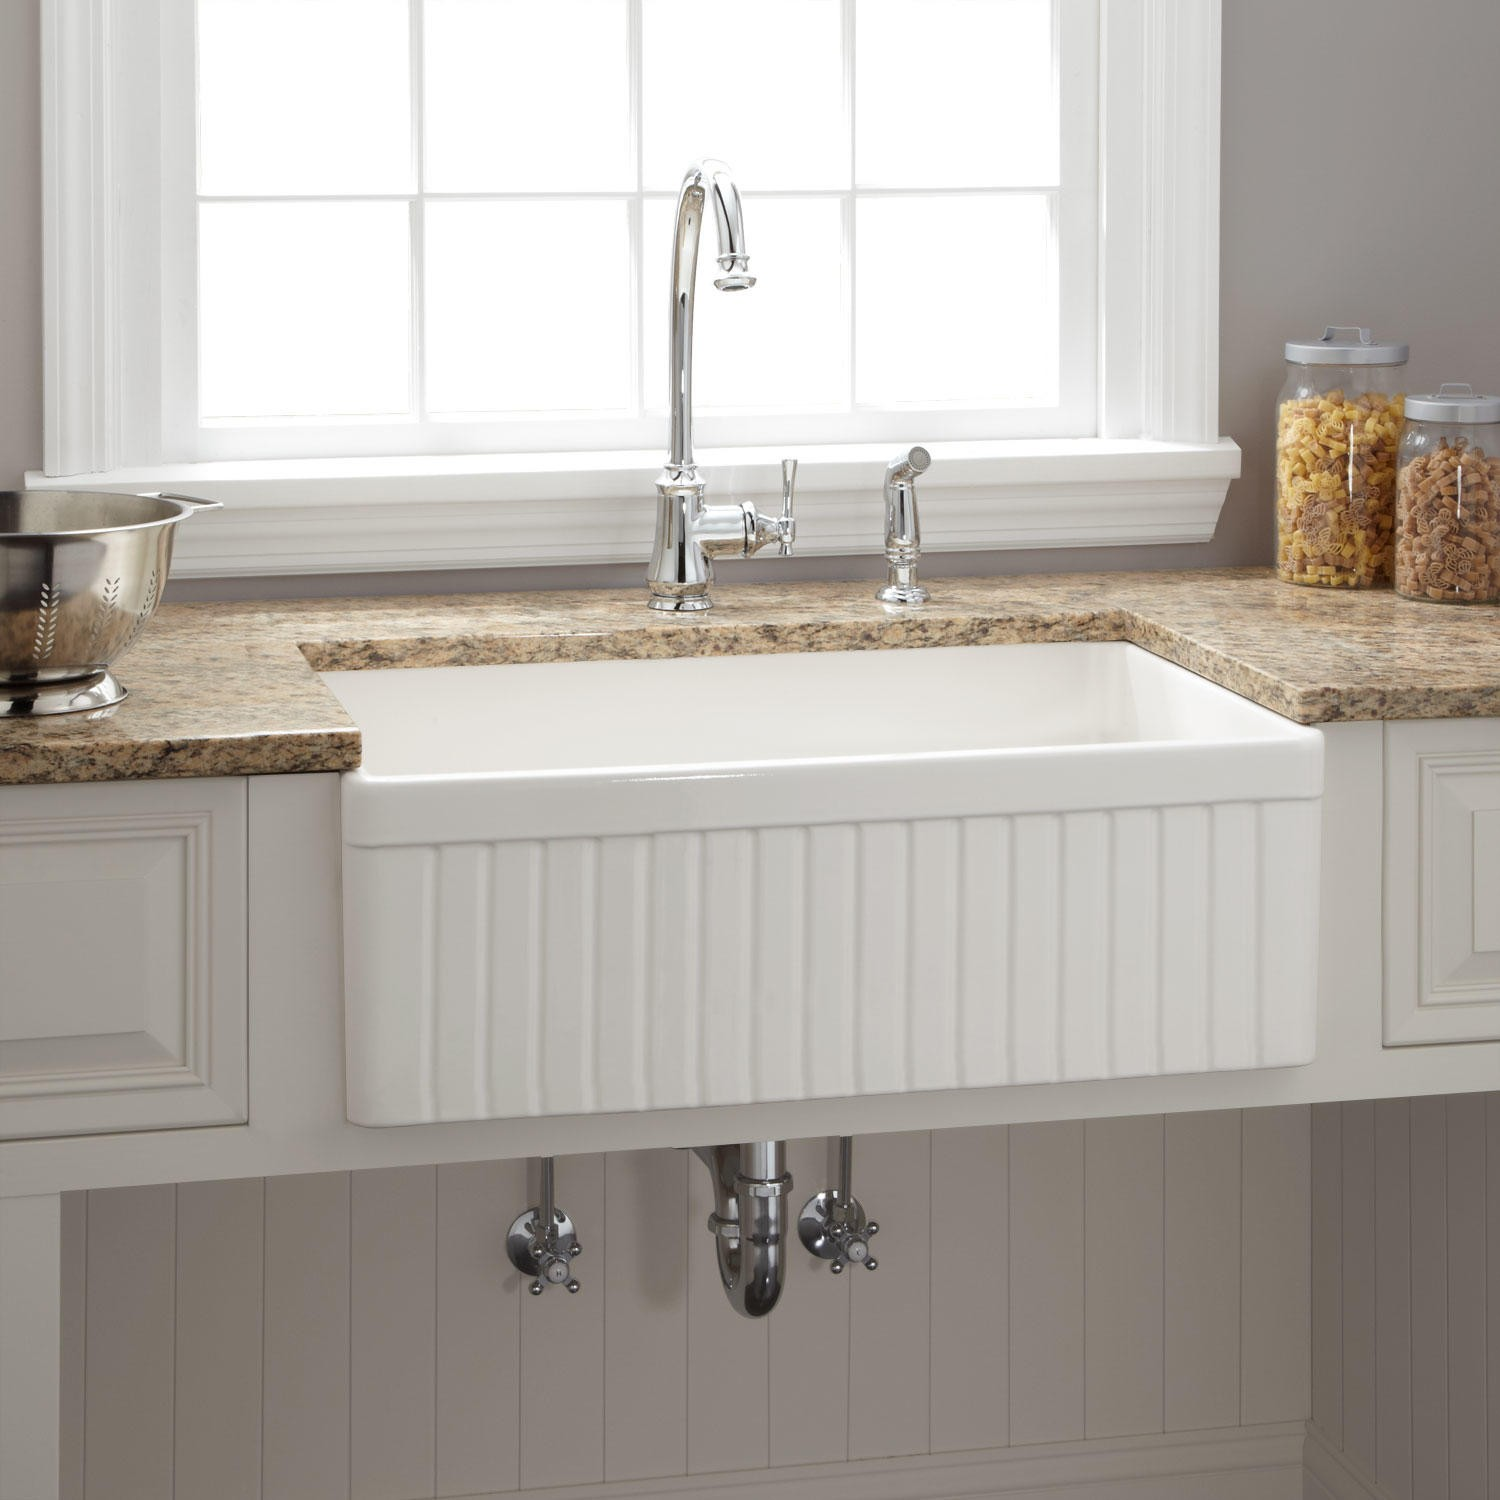 361765-l-single-bowl-fireclay-farmhouse-kitchen-sink_1_1